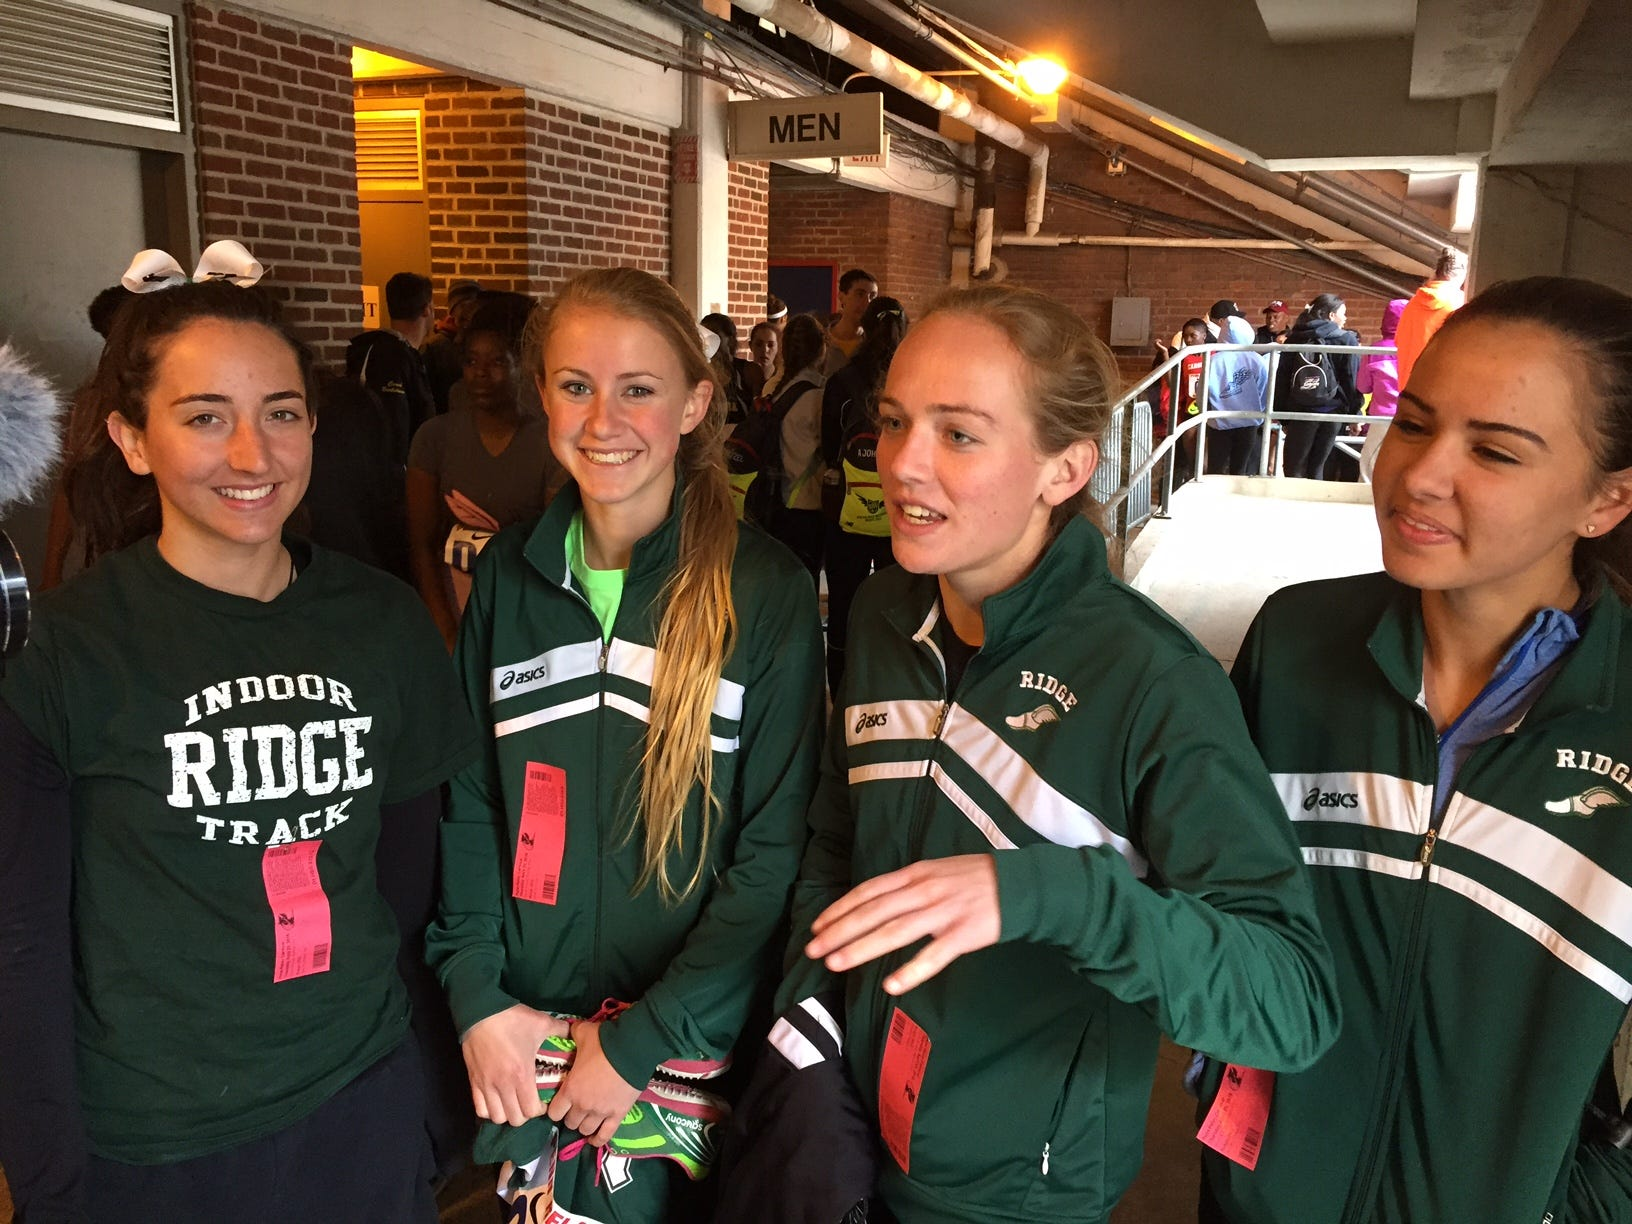 Ridge's 4x800 runners (left to right) Abby Regner, Emily Hirsch, Kelly Van Baalen and Liz Newman after Thursday's qualfying heat.